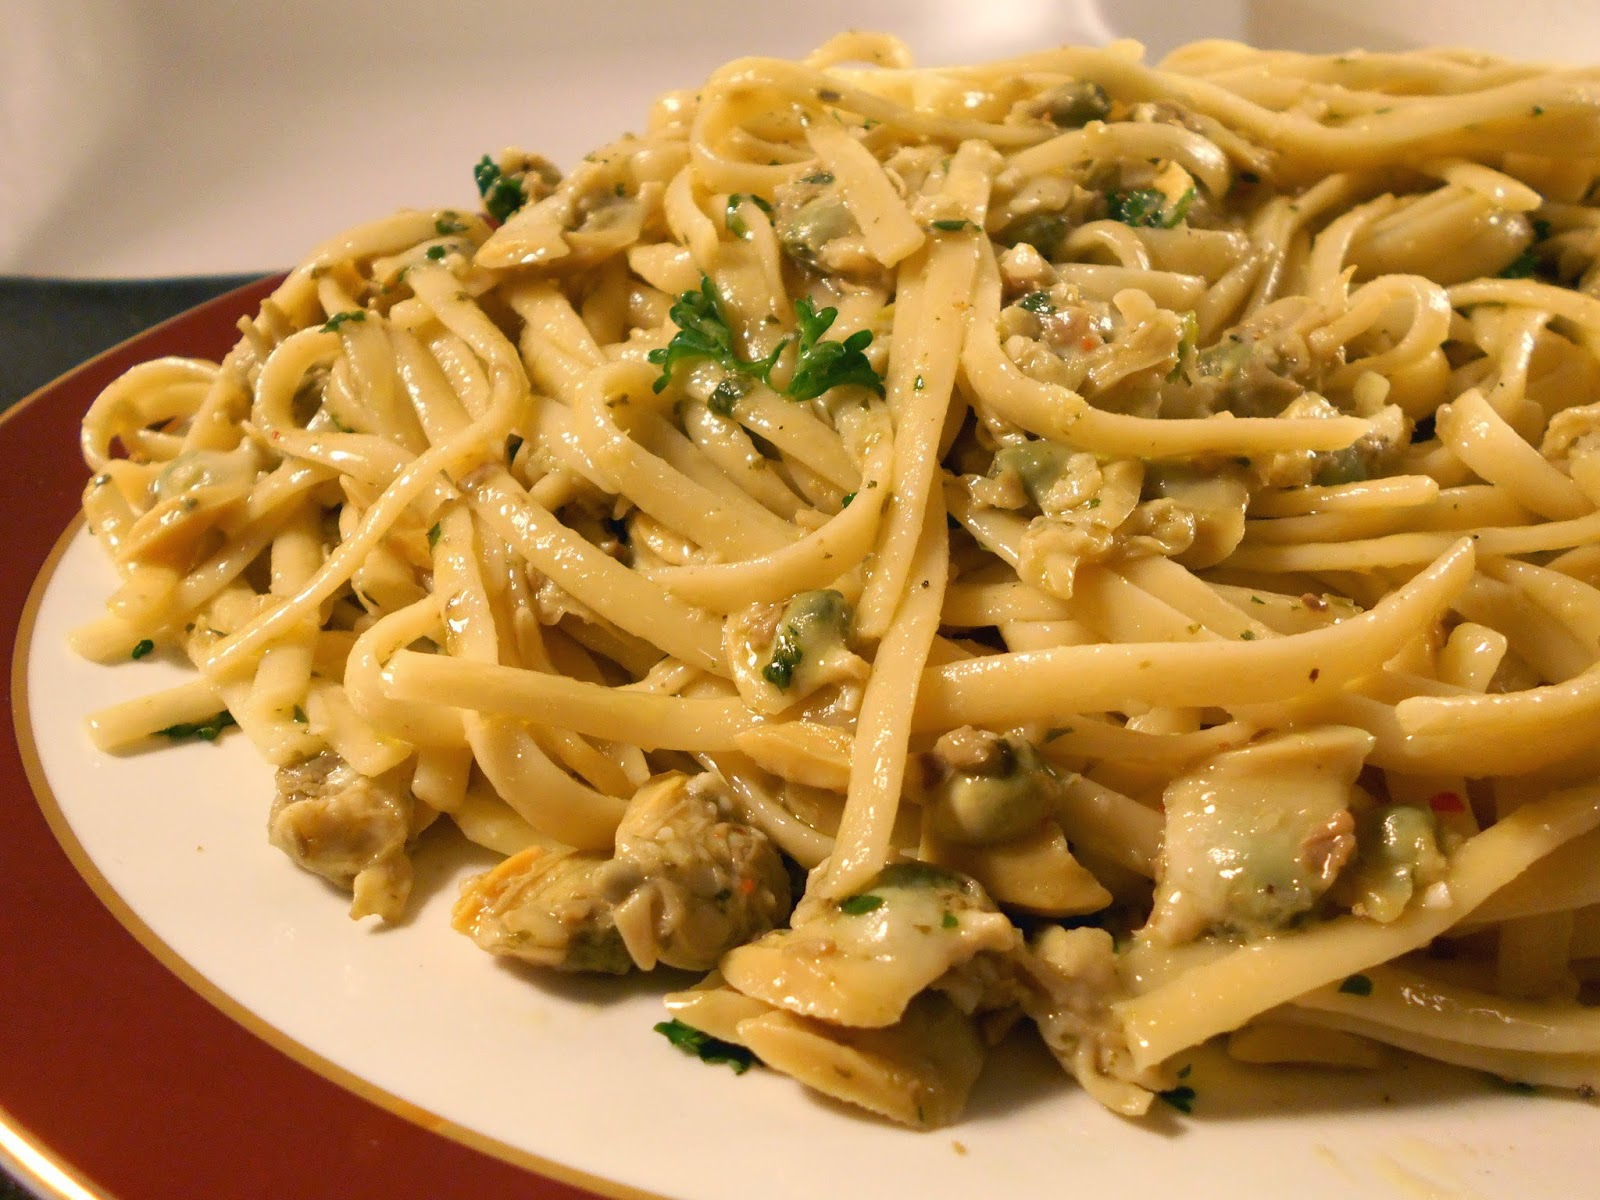 37 Cooks: Linguine with White Clam Sauce